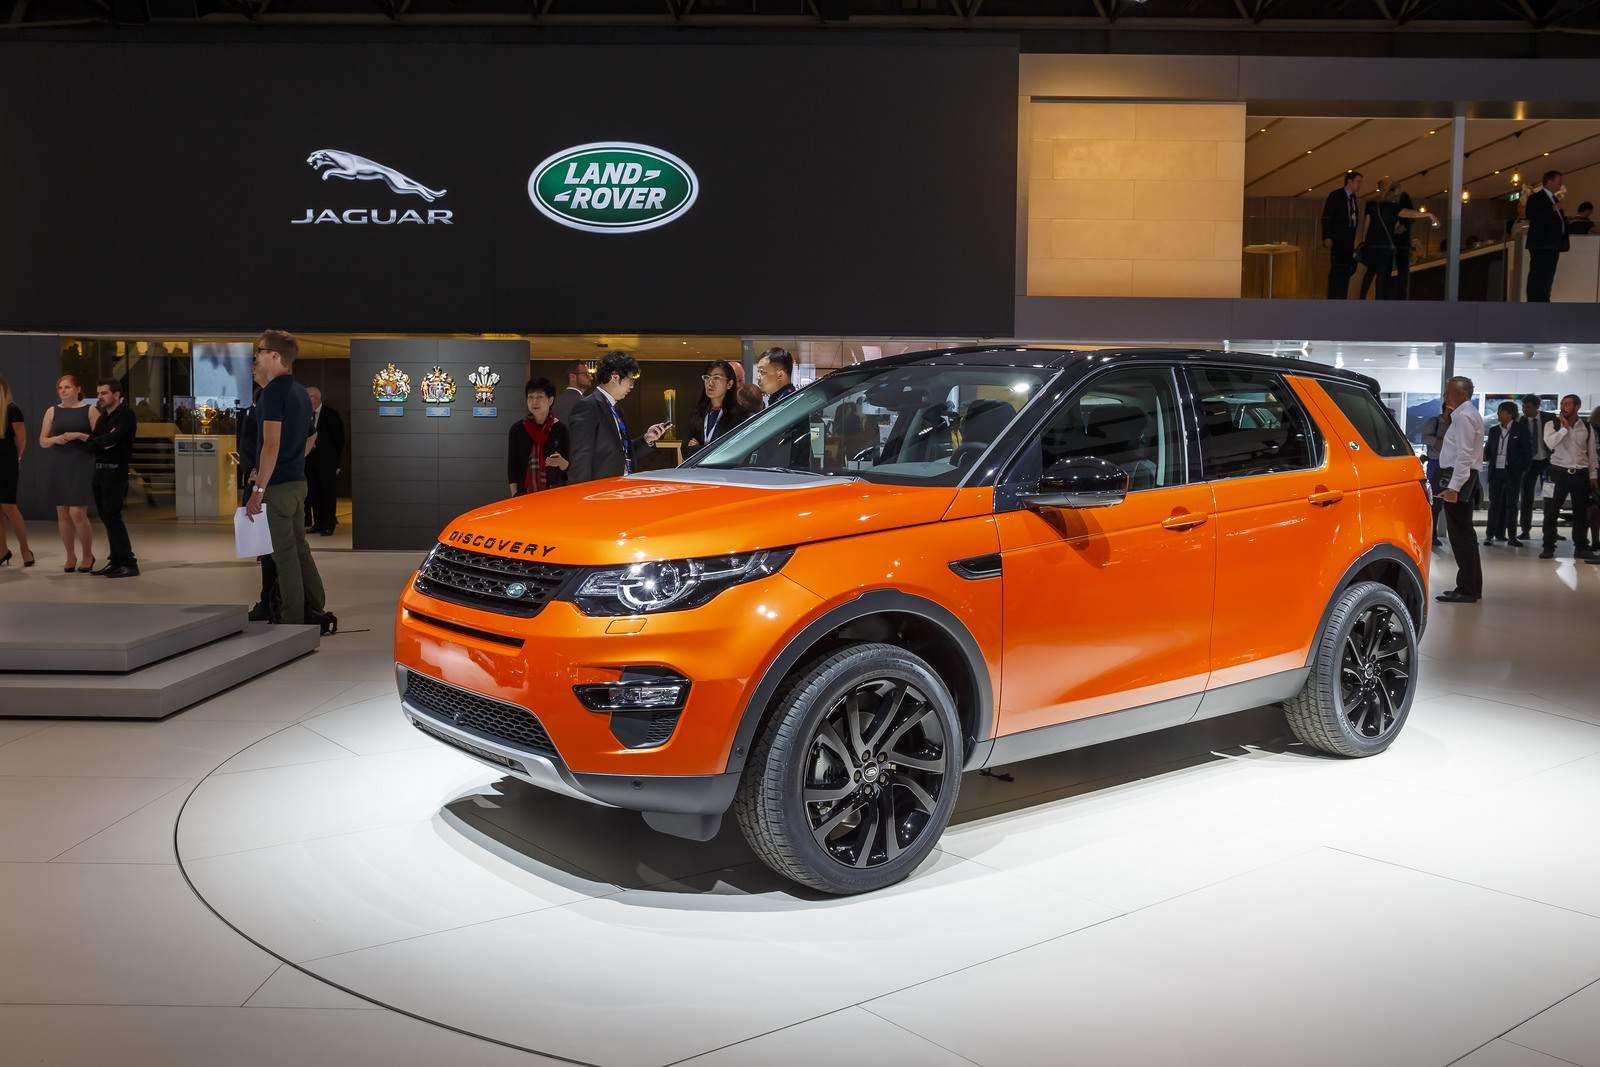 paris motor show Jaguar and Land Rover at Paris Auto Show 2014